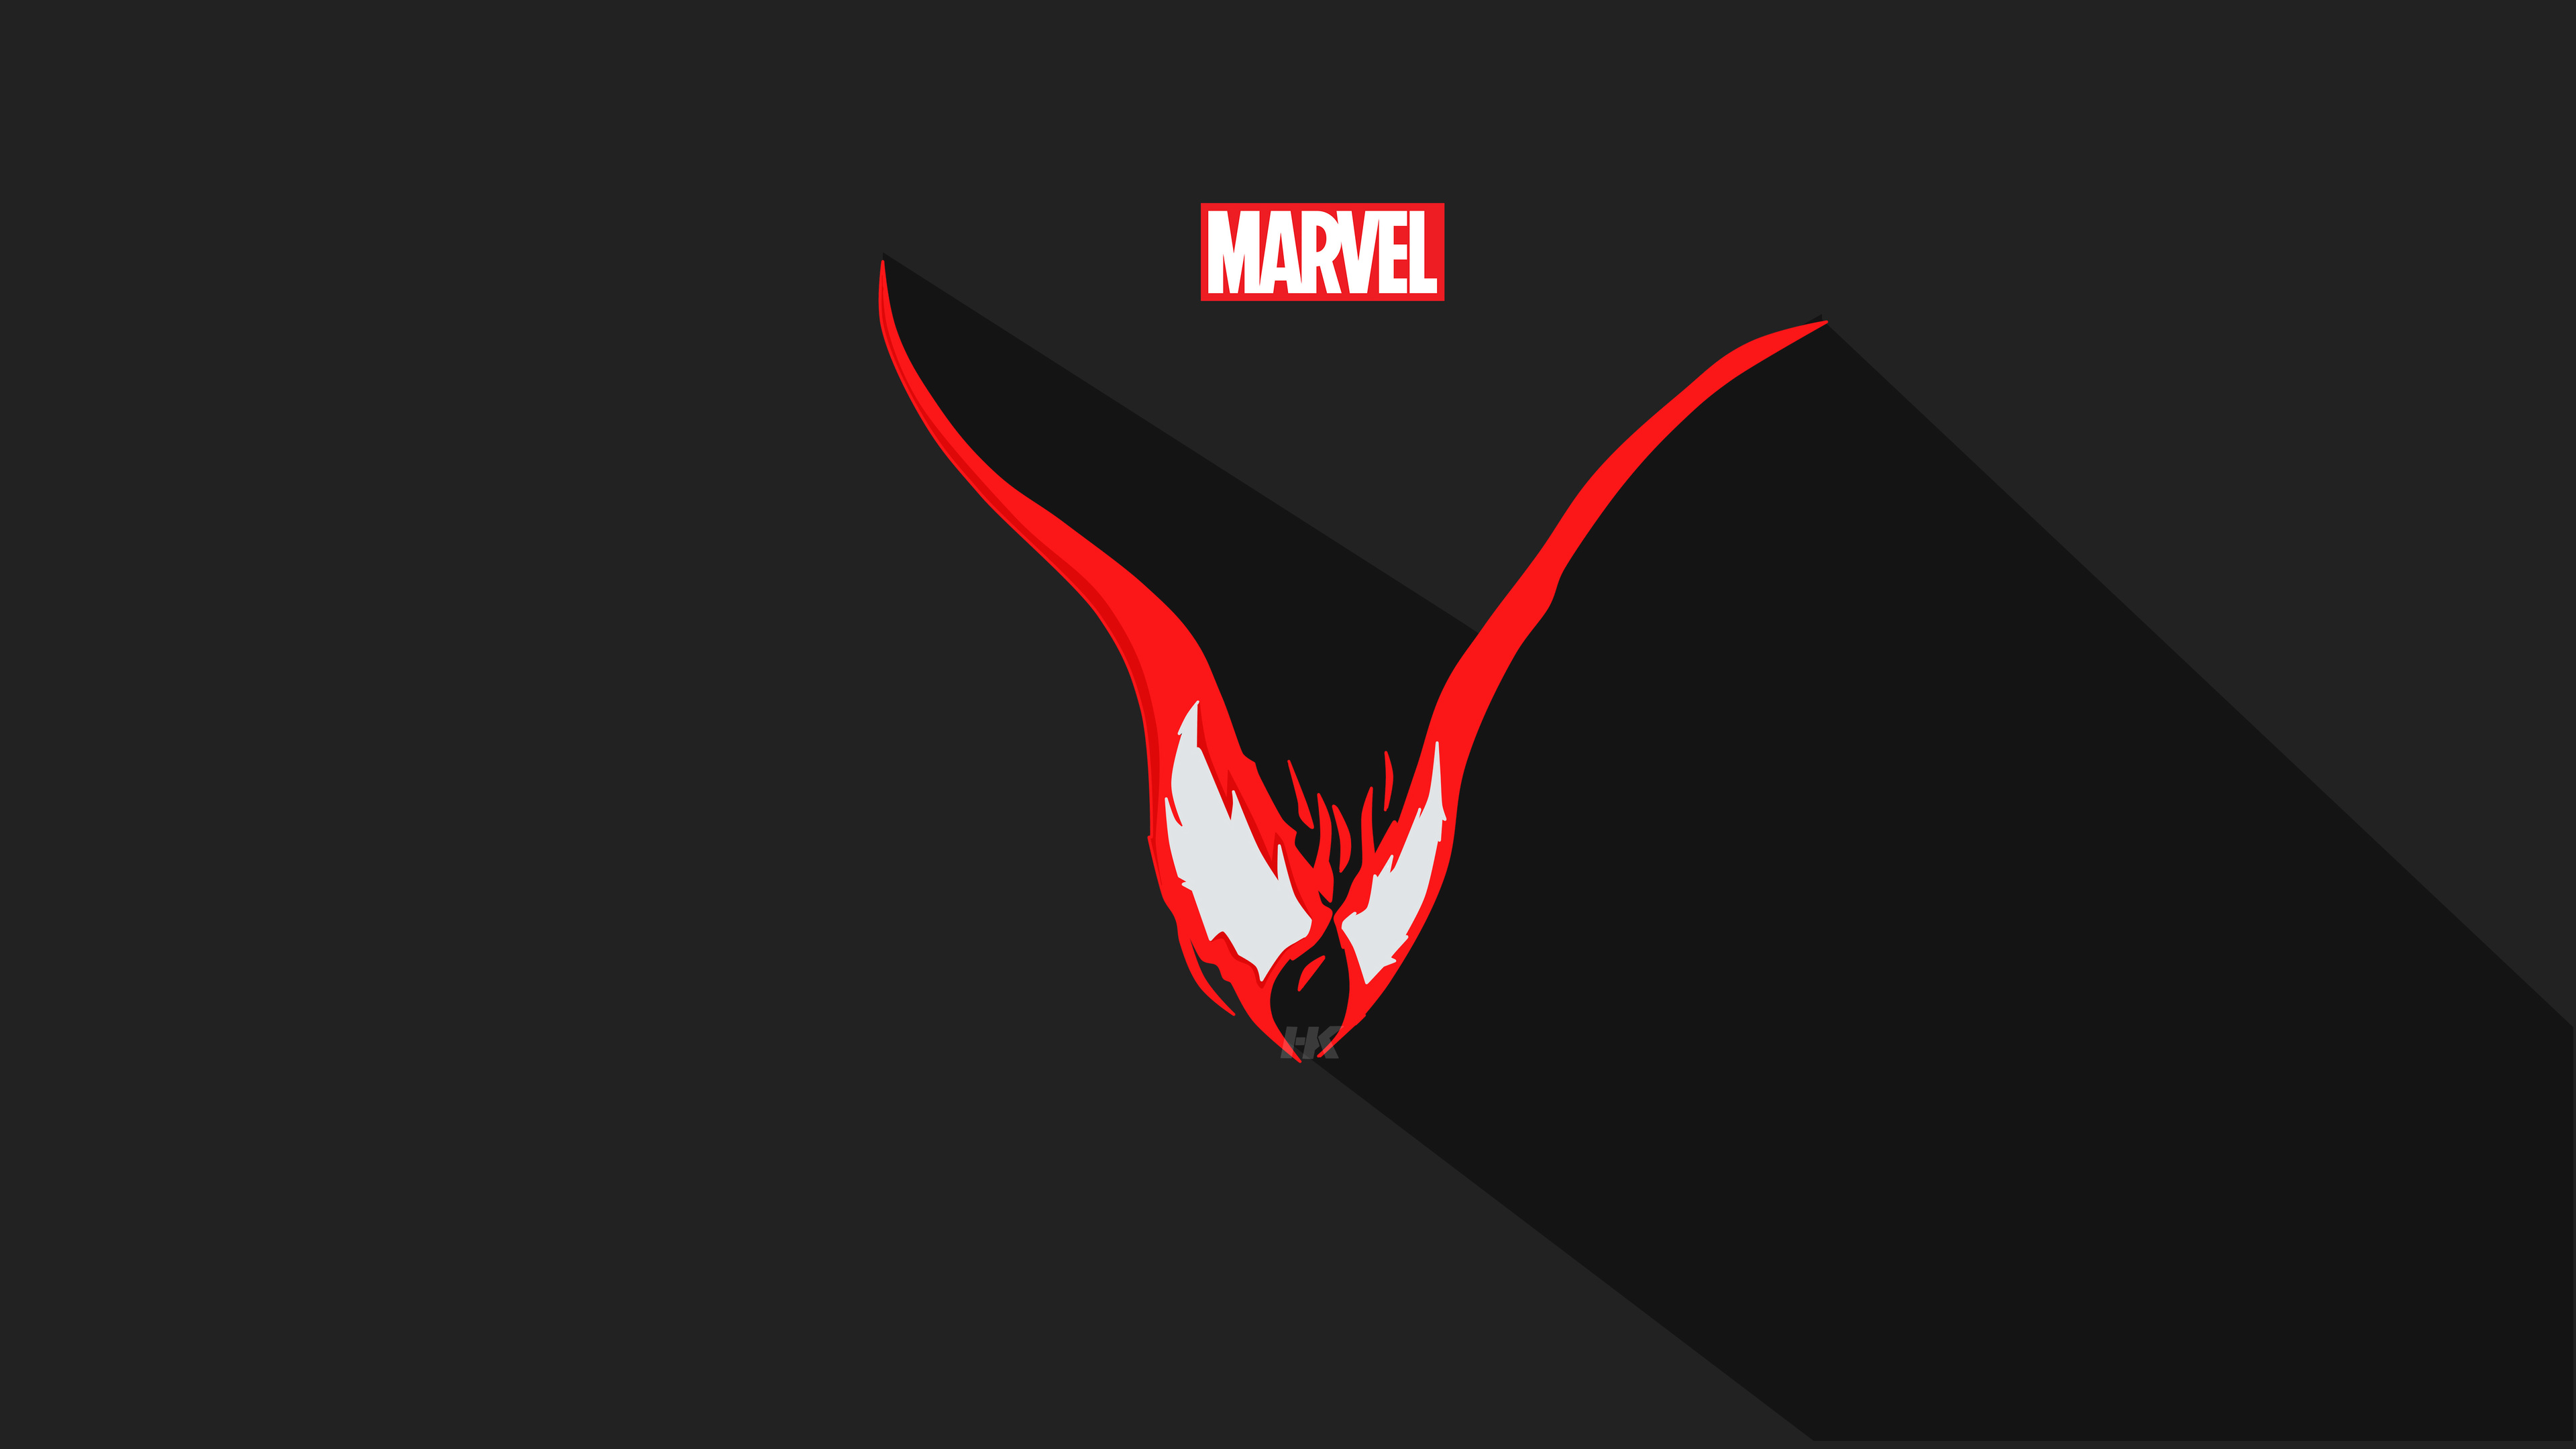 venom vector minimalism 5k 1536524065 - Venom Vector Minimalism 5k - Venom wallpapers, vector wallpapers, superheroes wallpapers, minimalism wallpapers, hd-wallpapers, artstation wallpapers, 5k wallpapers, 4k-wallpapers